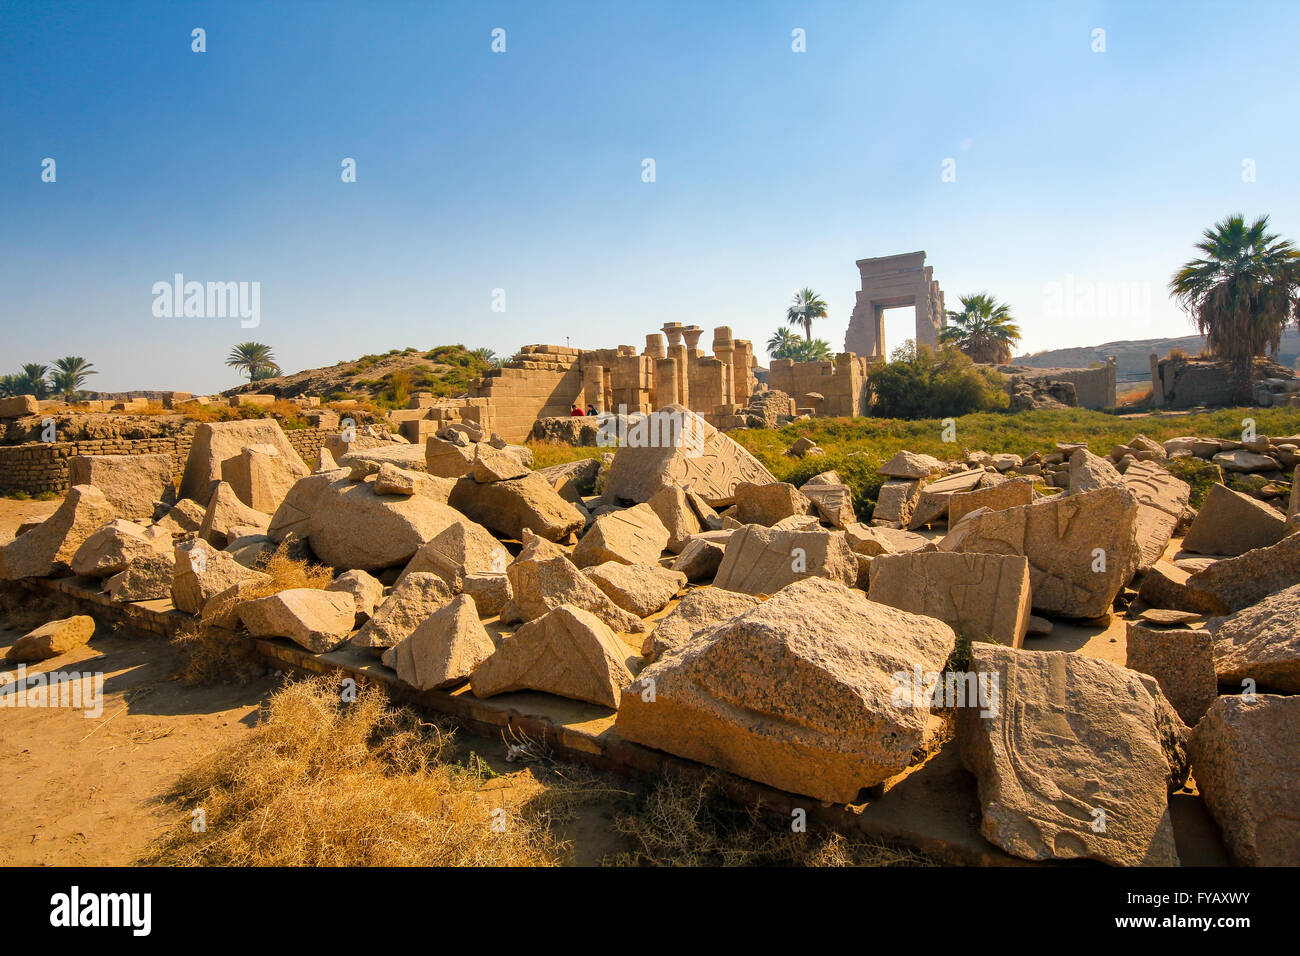 Temple de Karnak, Louxor, Egypte, Afrique du Sud Photo Stock